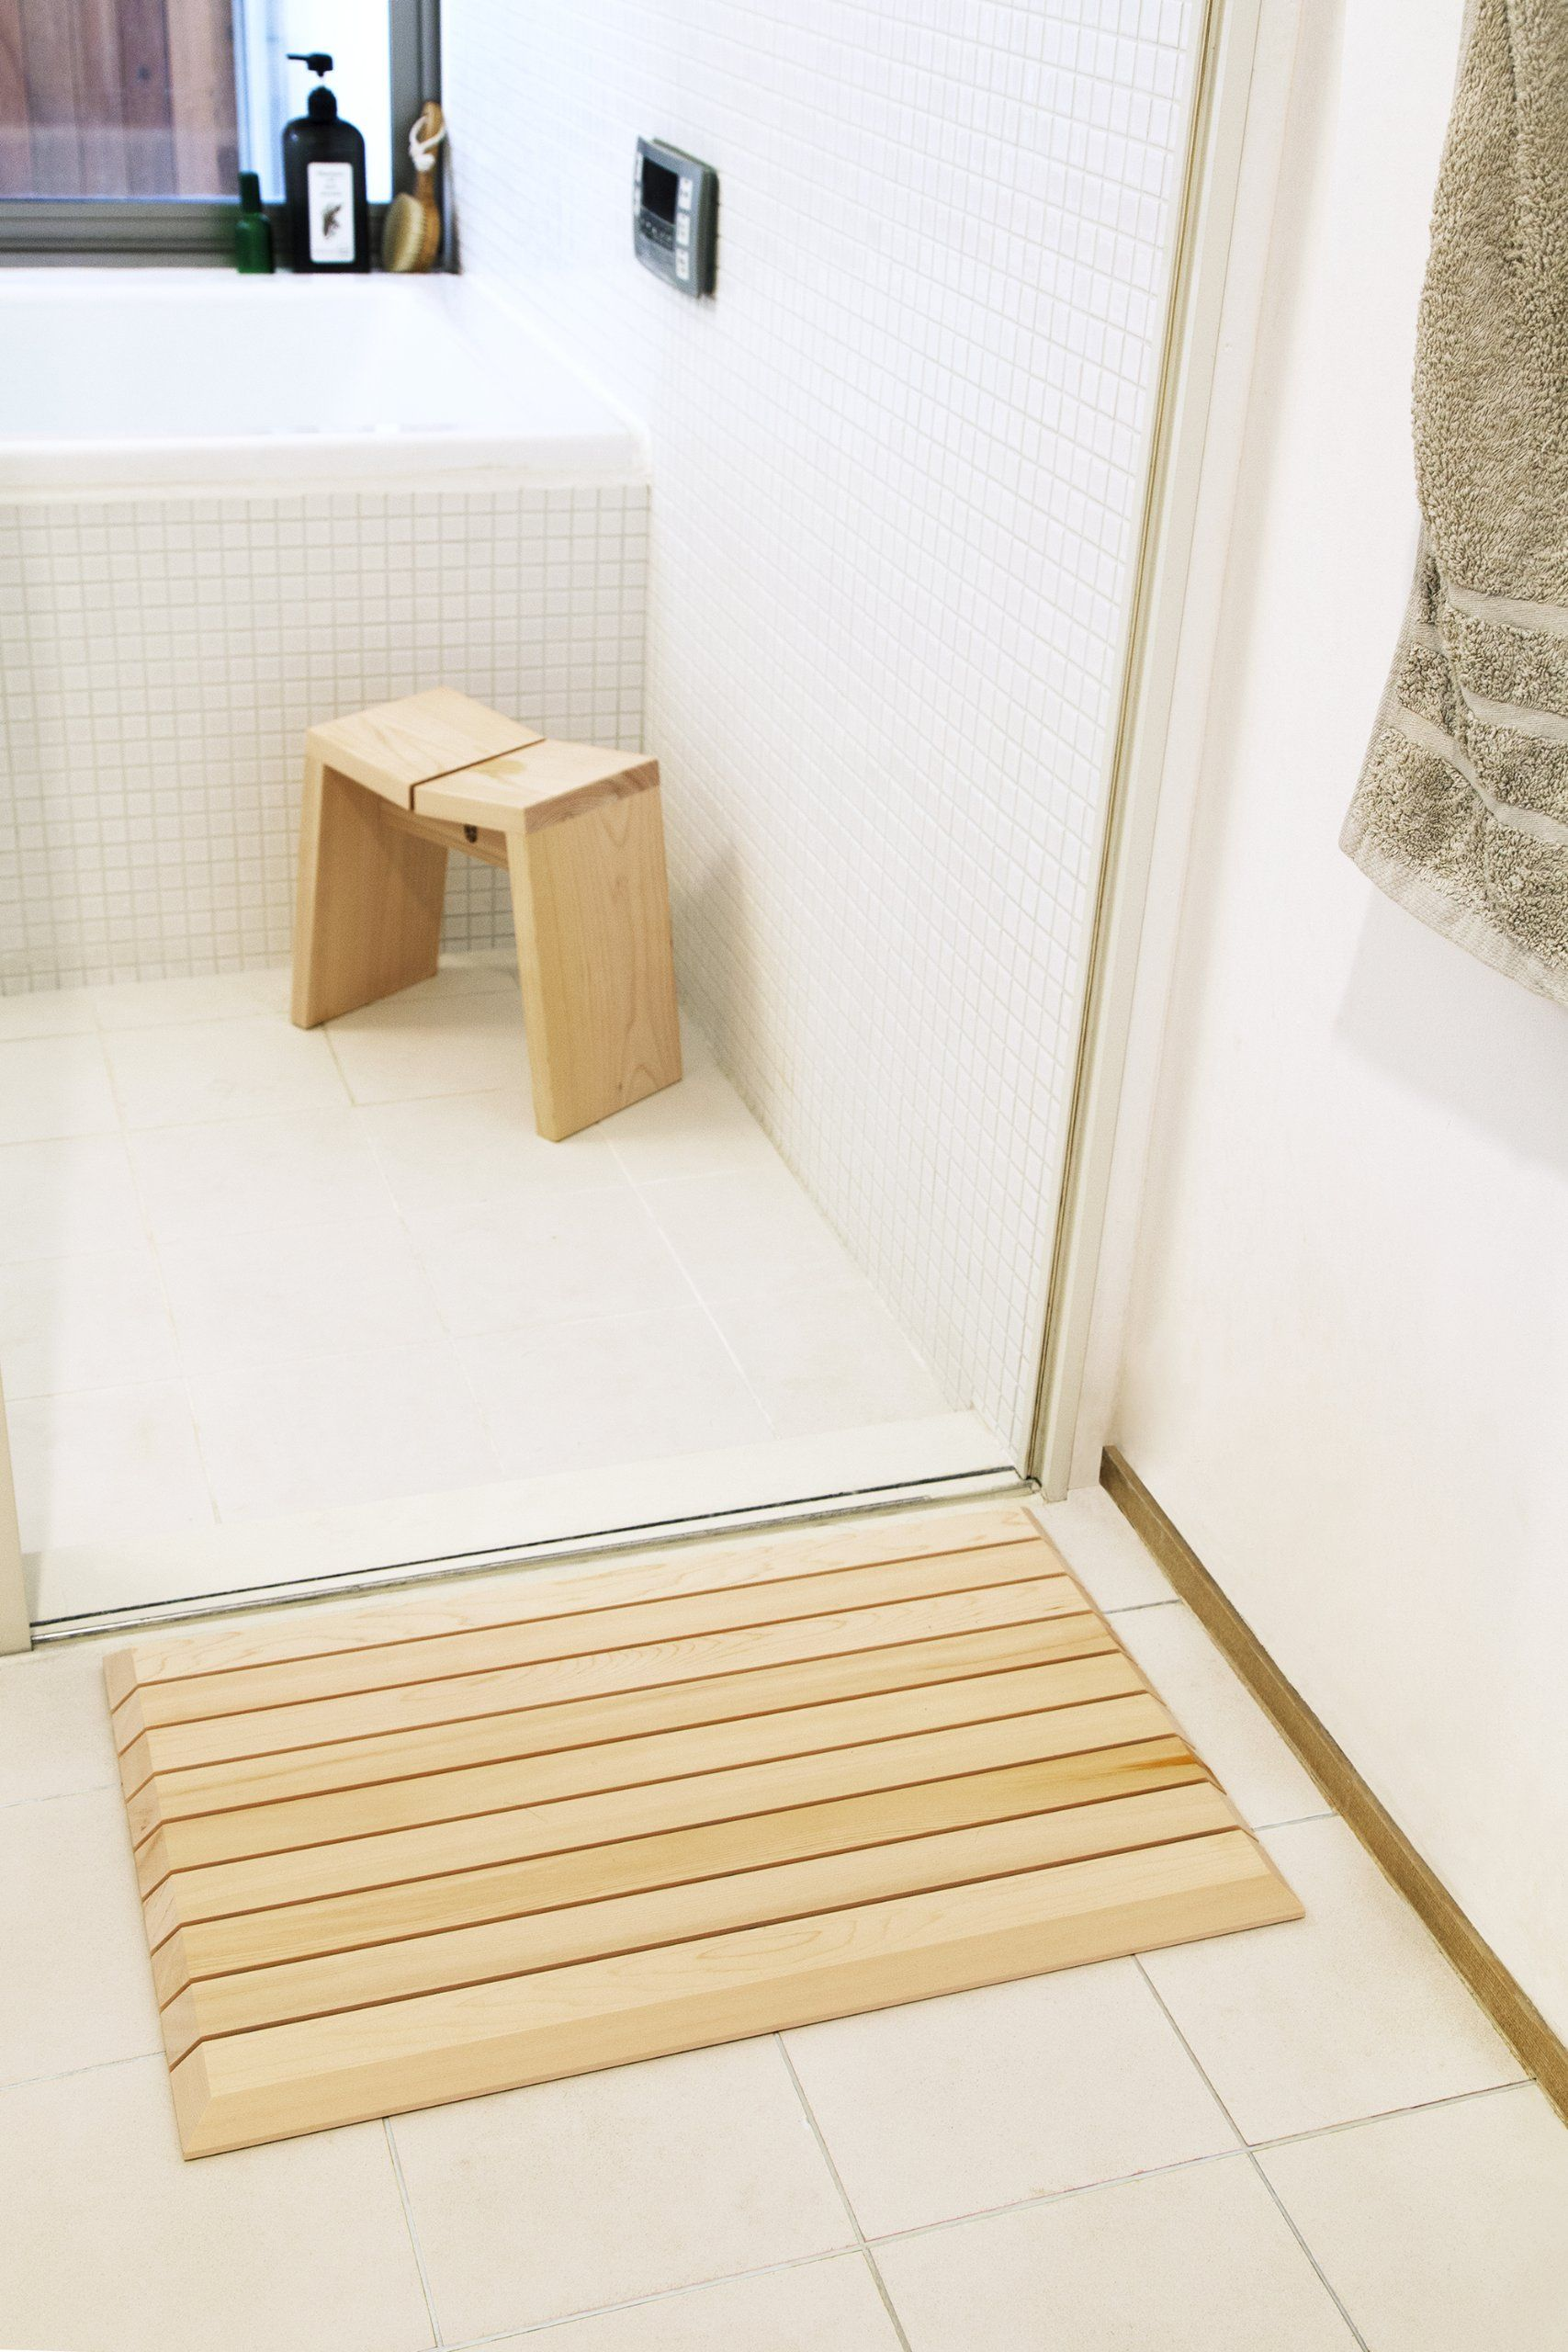 Amazon Com Wooden Bath Mat Made By Japanese Traditional Craftsmanship Wooden Bathmat Bathroom Floor Mat Wooden Bath